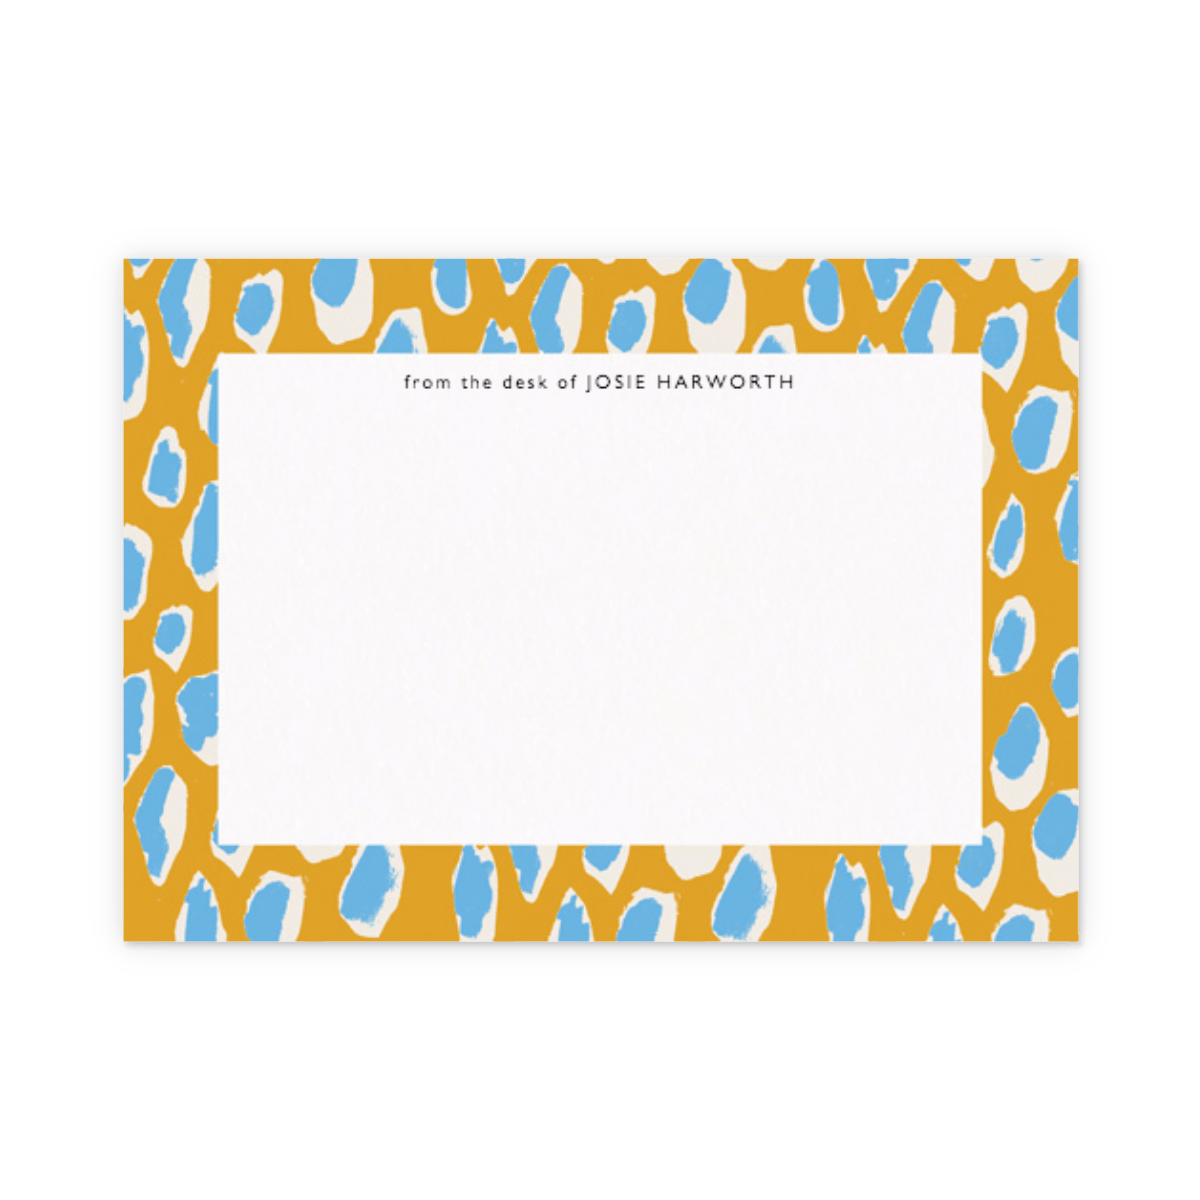 Https%3a%2f%2fwww.papier.com%2fproduct image%2f27873%2f10%2fpainted leopard 6950 front 1505841552.png?ixlib=rb 1.1